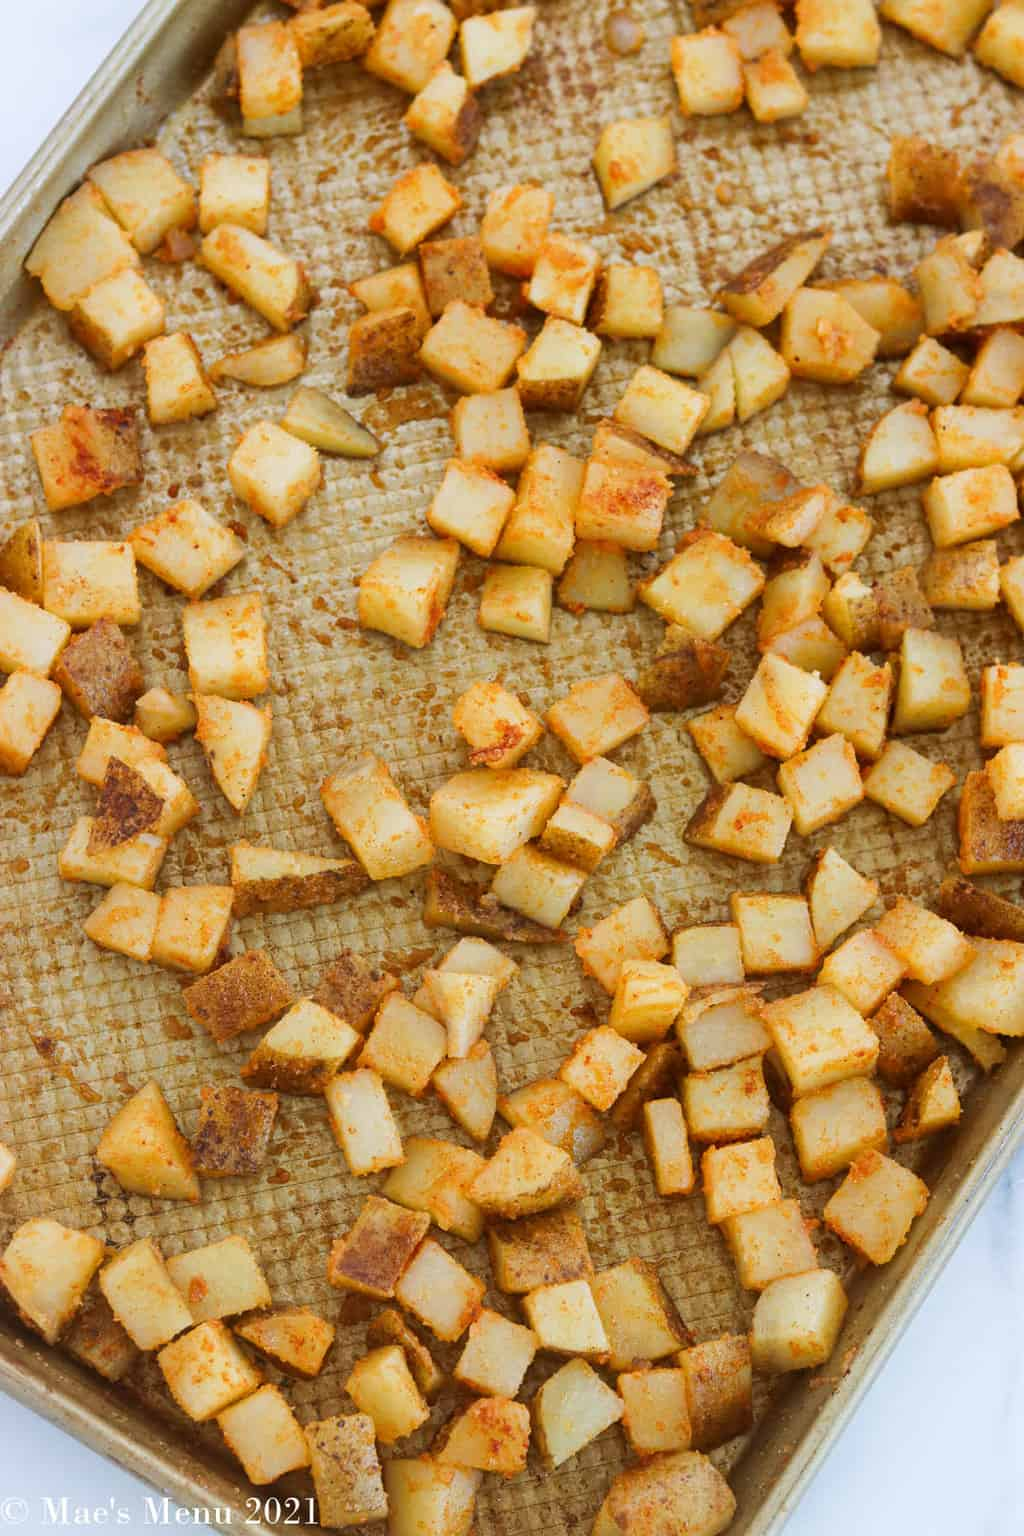 Potatoes tossed with the seasonings on a baking sheet